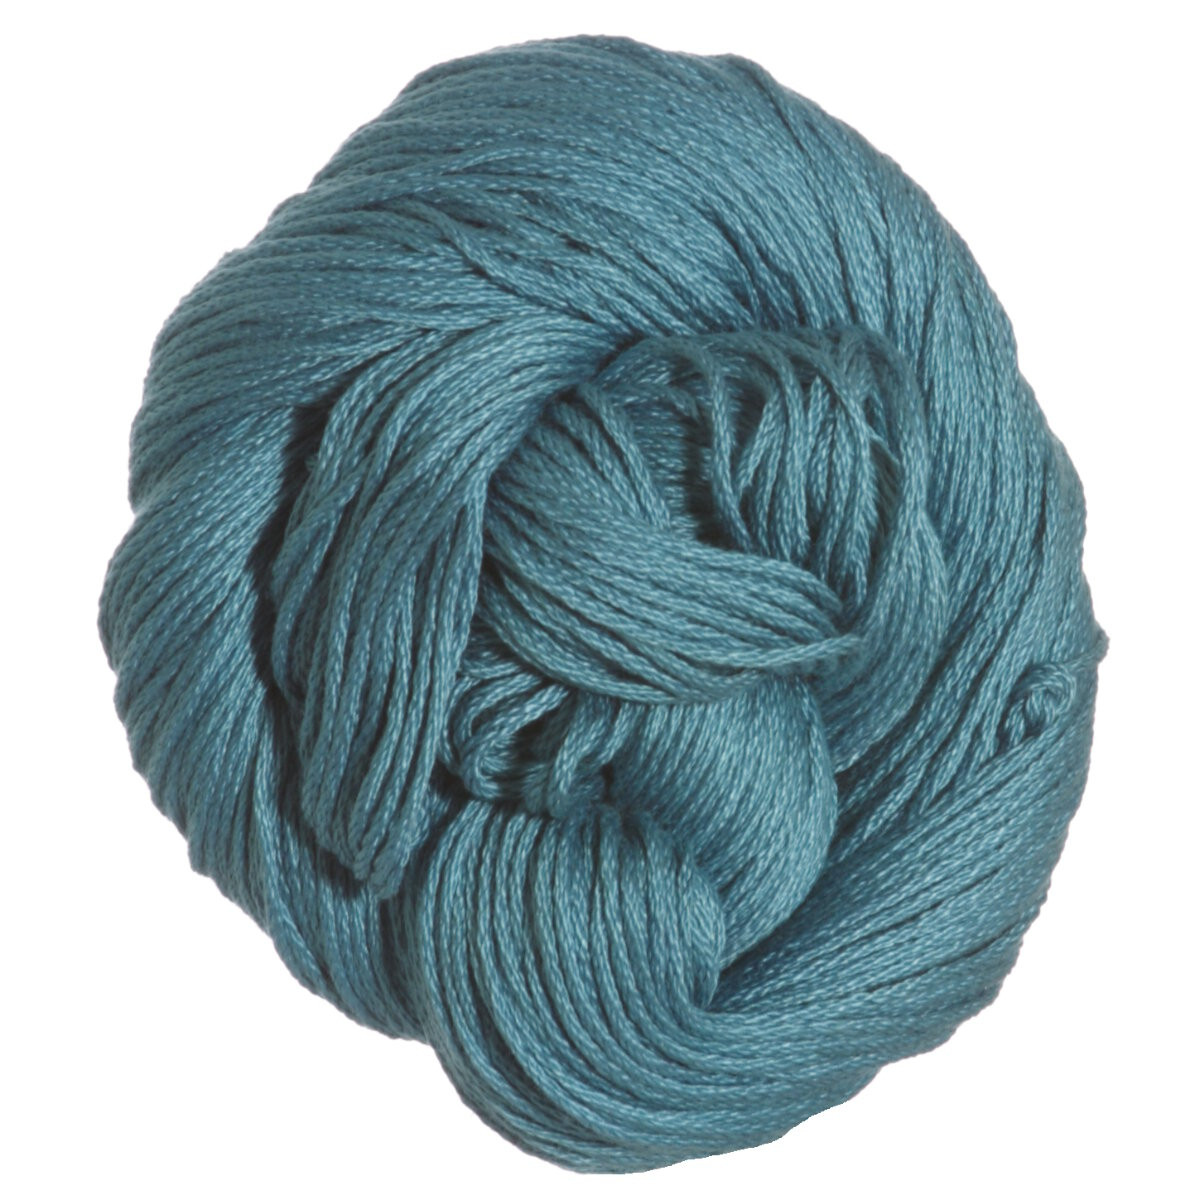 Tahki Cotton Classic Beautiful Tahki Cotton Classic Yarn 3809 Teal Detailed Of Incredible 46 Pictures Tahki Cotton Classic